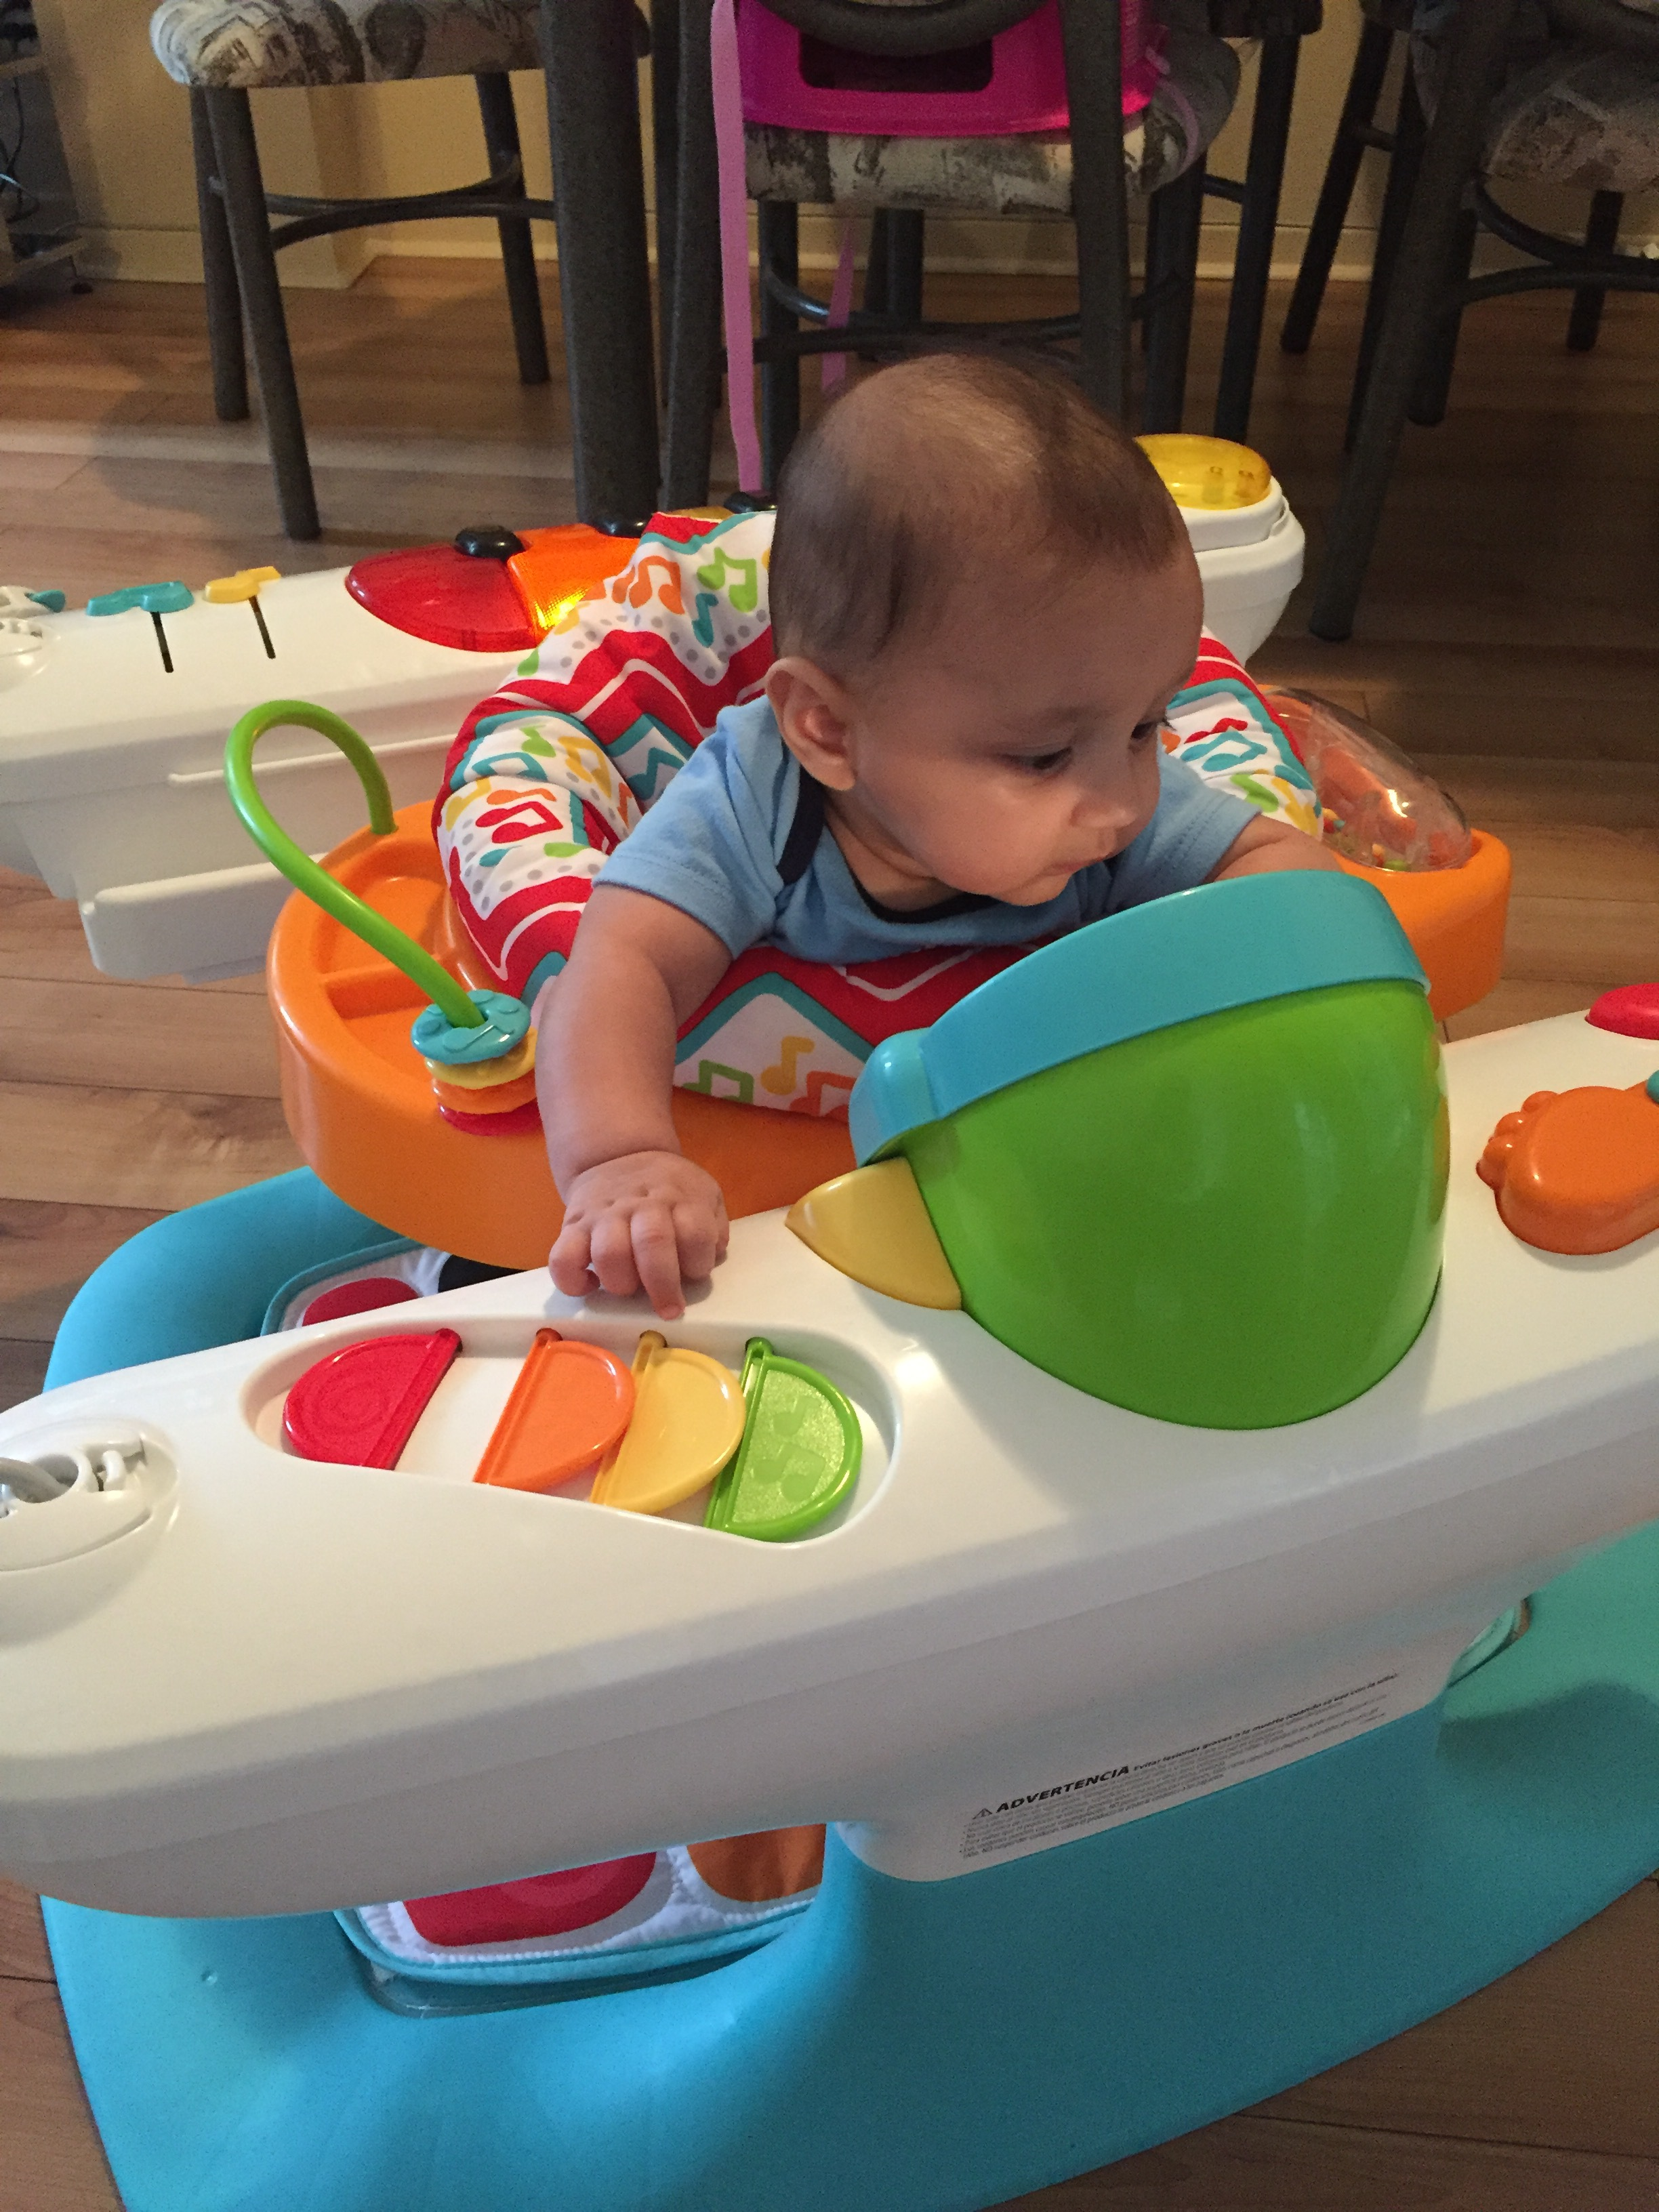 Fisher Price 4 In 1 Step And Play Piano Reviews In Baby